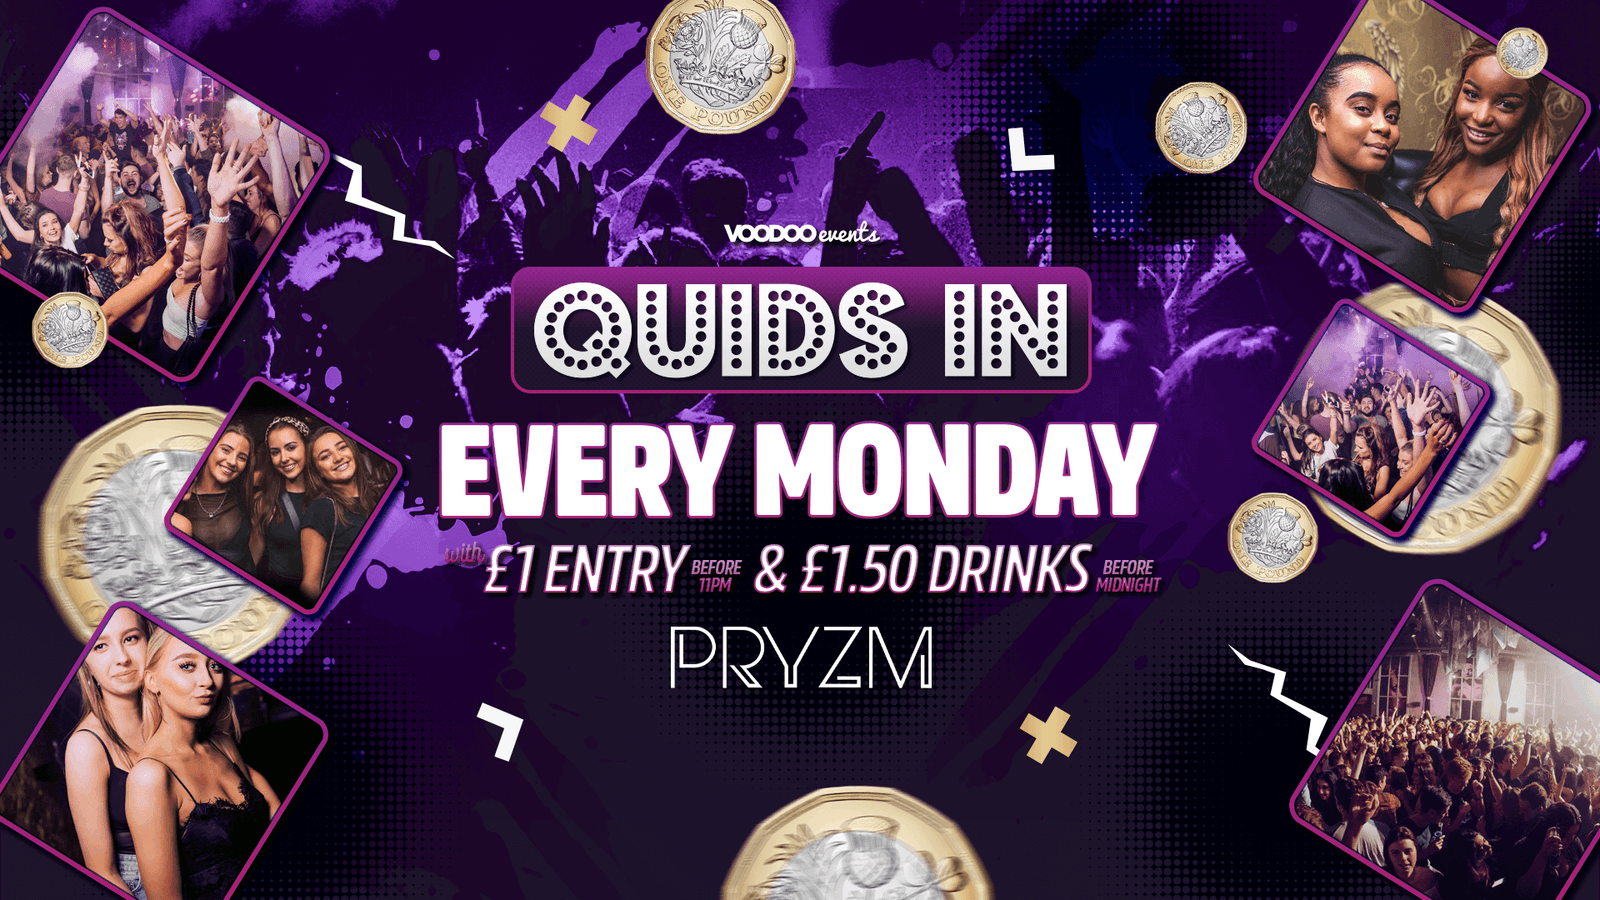 Quids In Mondays at PRYZM – 16th August